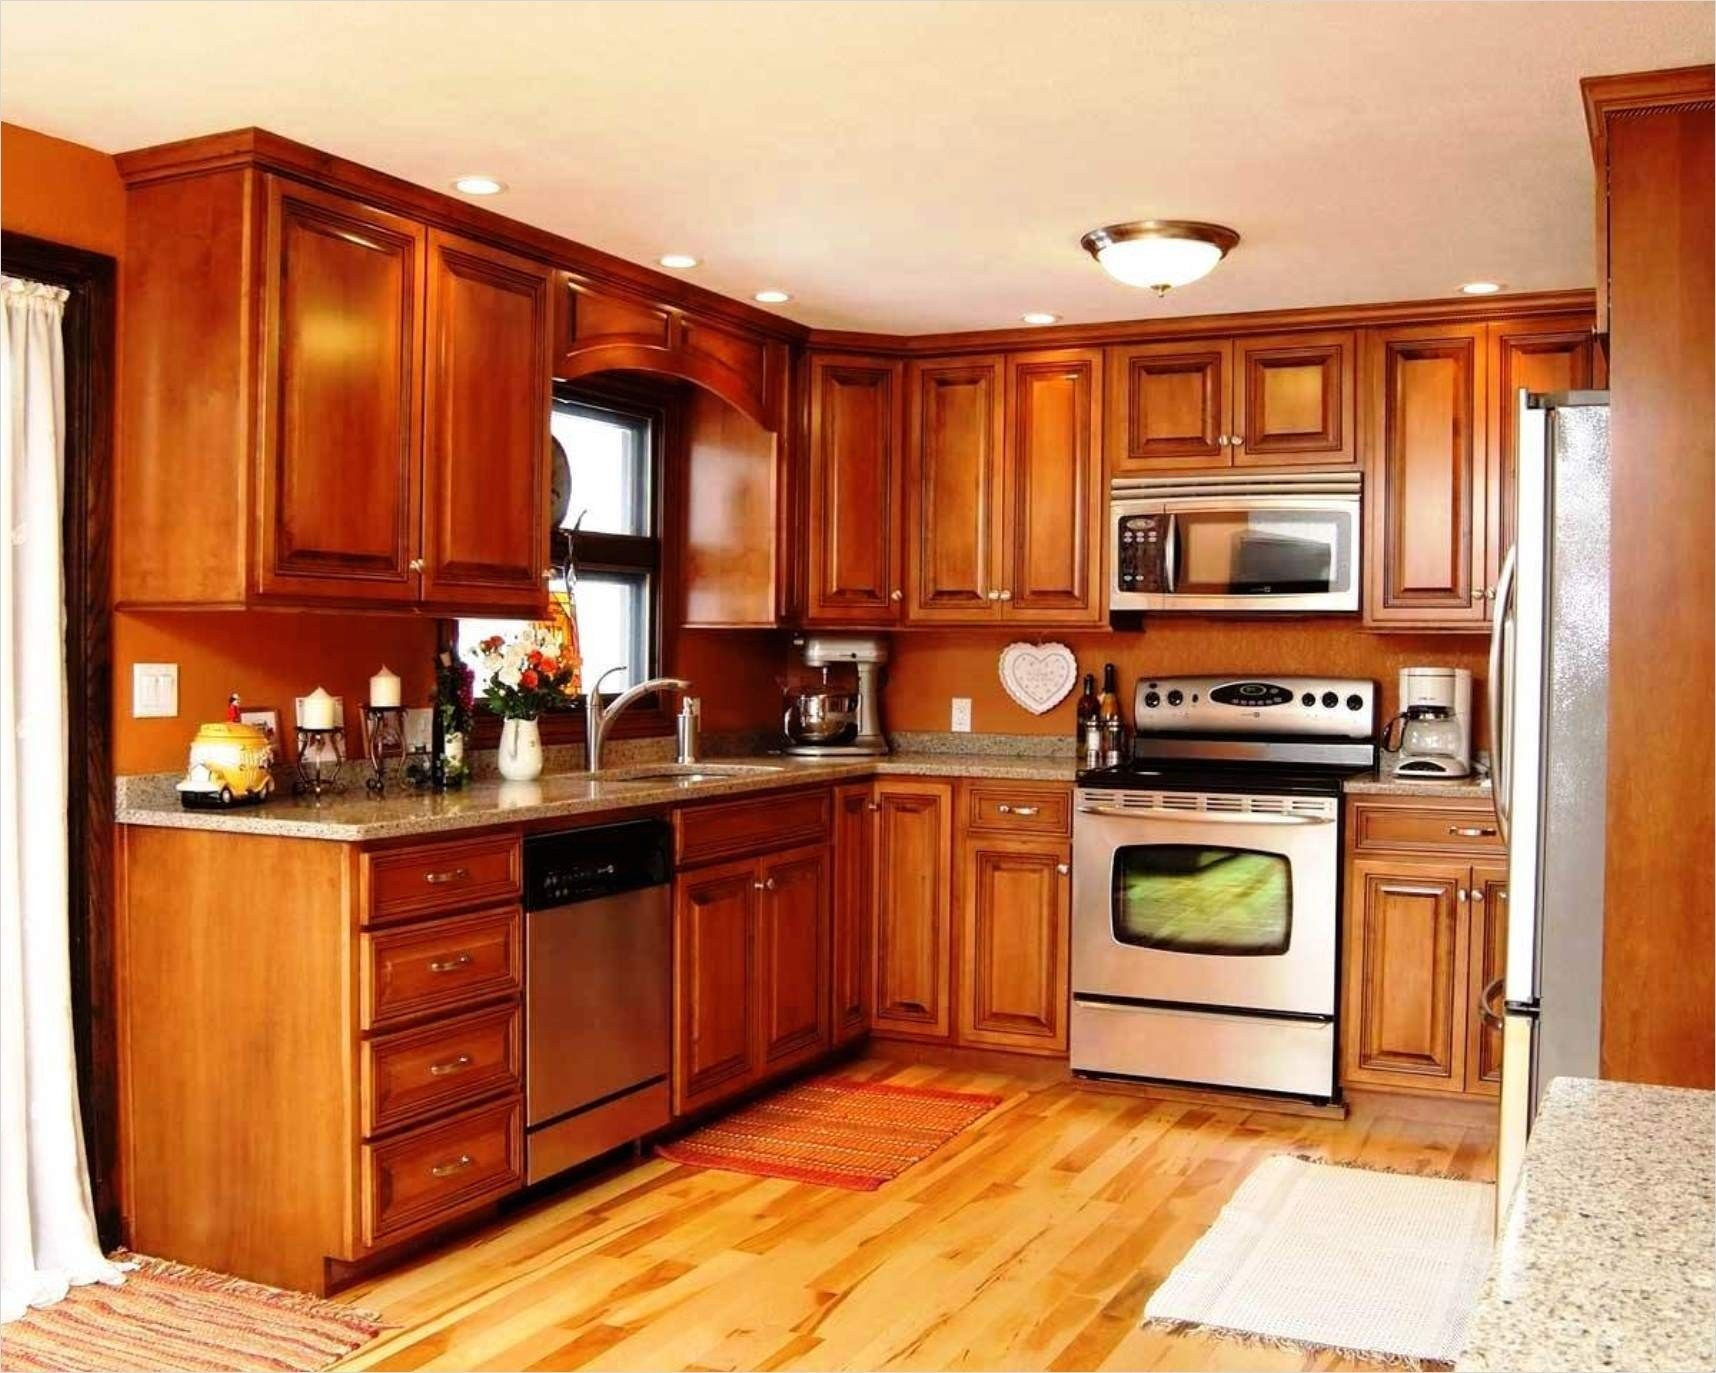 Kitchen With Maple Cabinets Color Ideas 25 In 2020 Kitchen Cabinets Kitchen Cabinet Color Schemes Maple Kitchen Cabinets